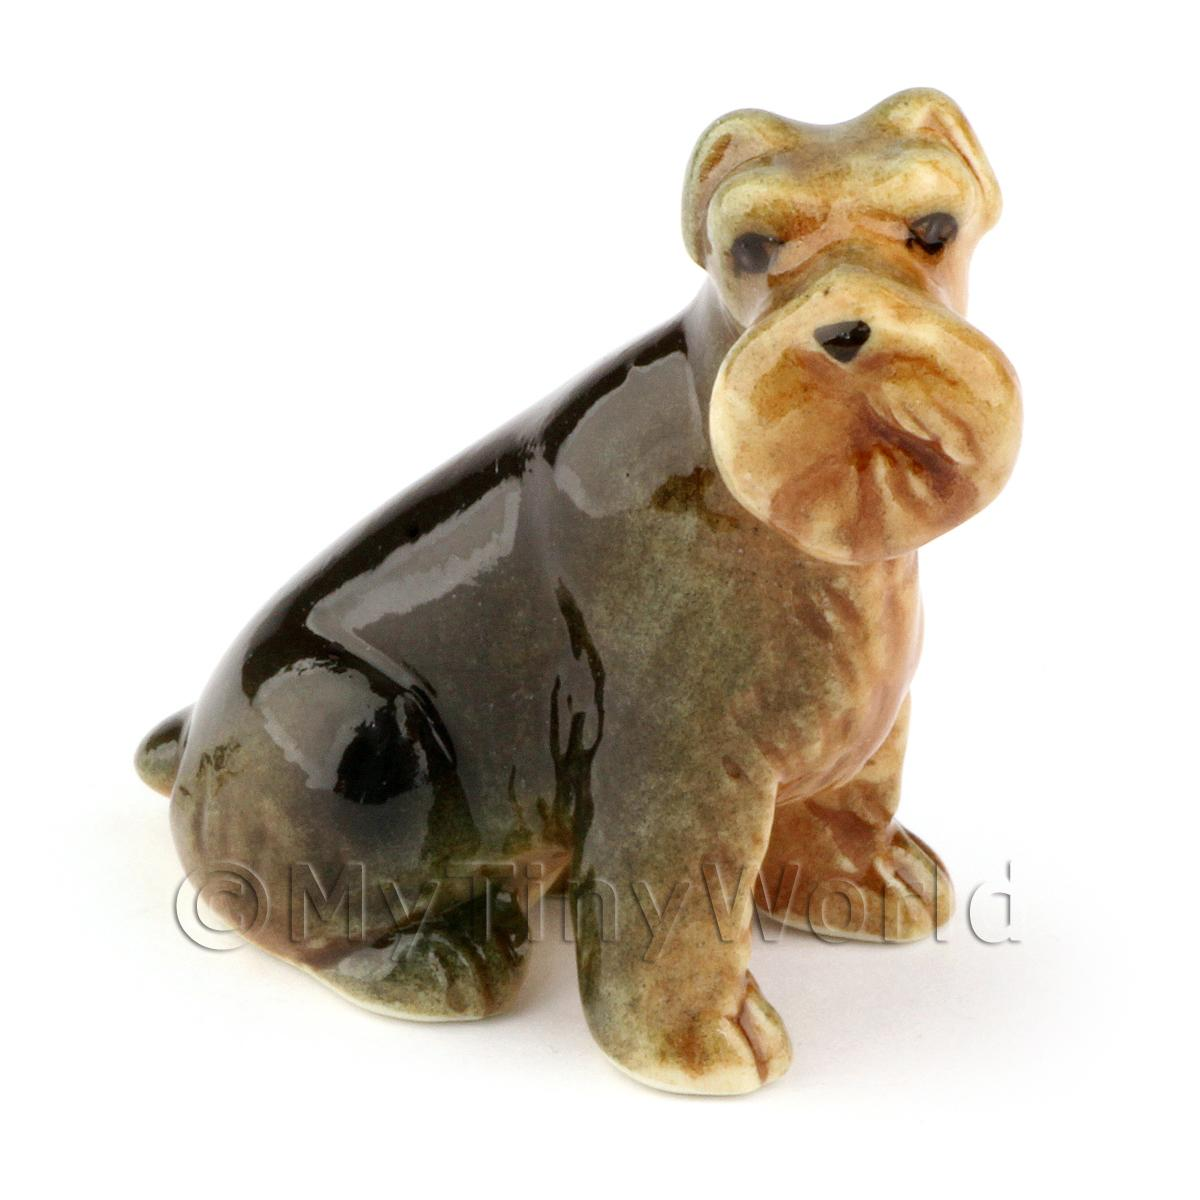 Dolls House Miniature Adult  Sitting Airedale Terrier Dog